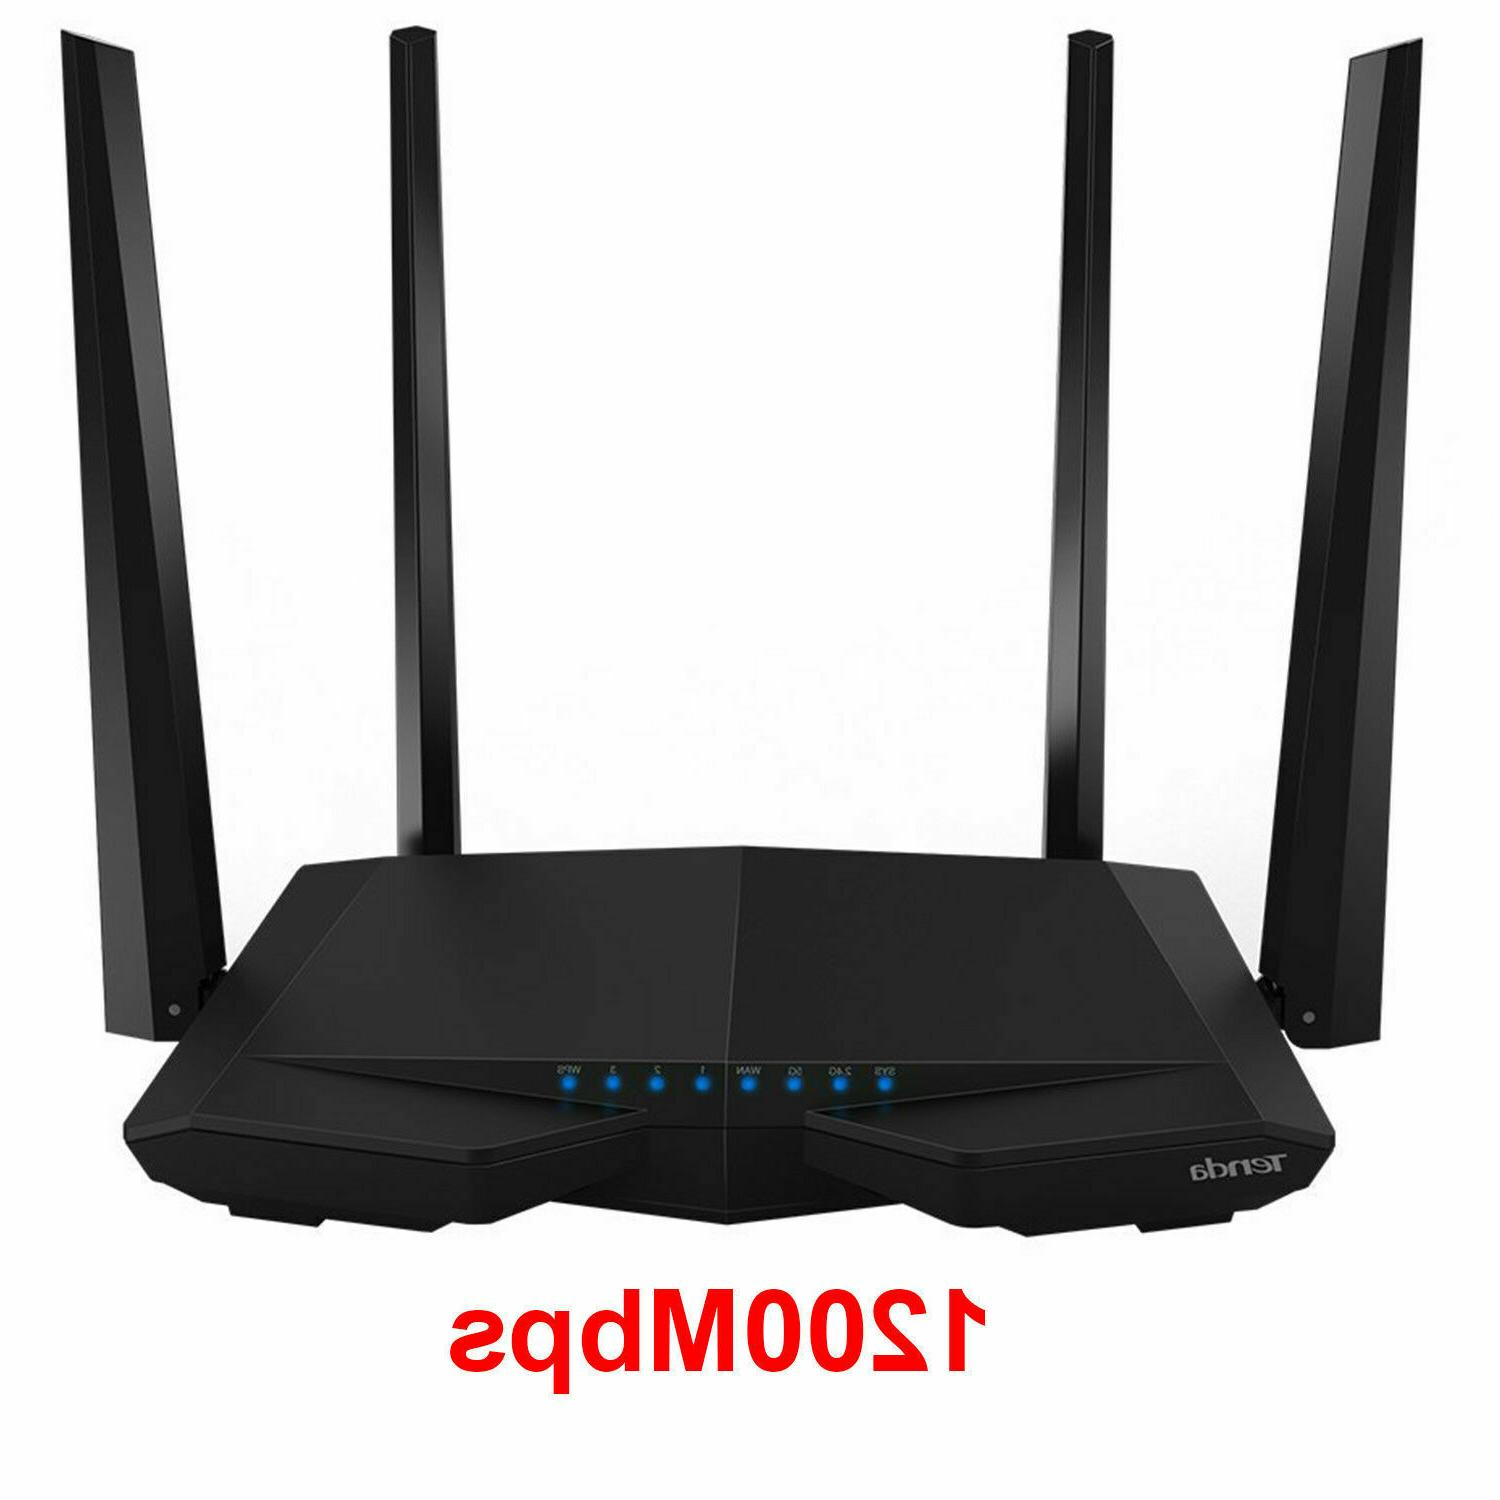 dual band ethernet ac1200 high speed wireless